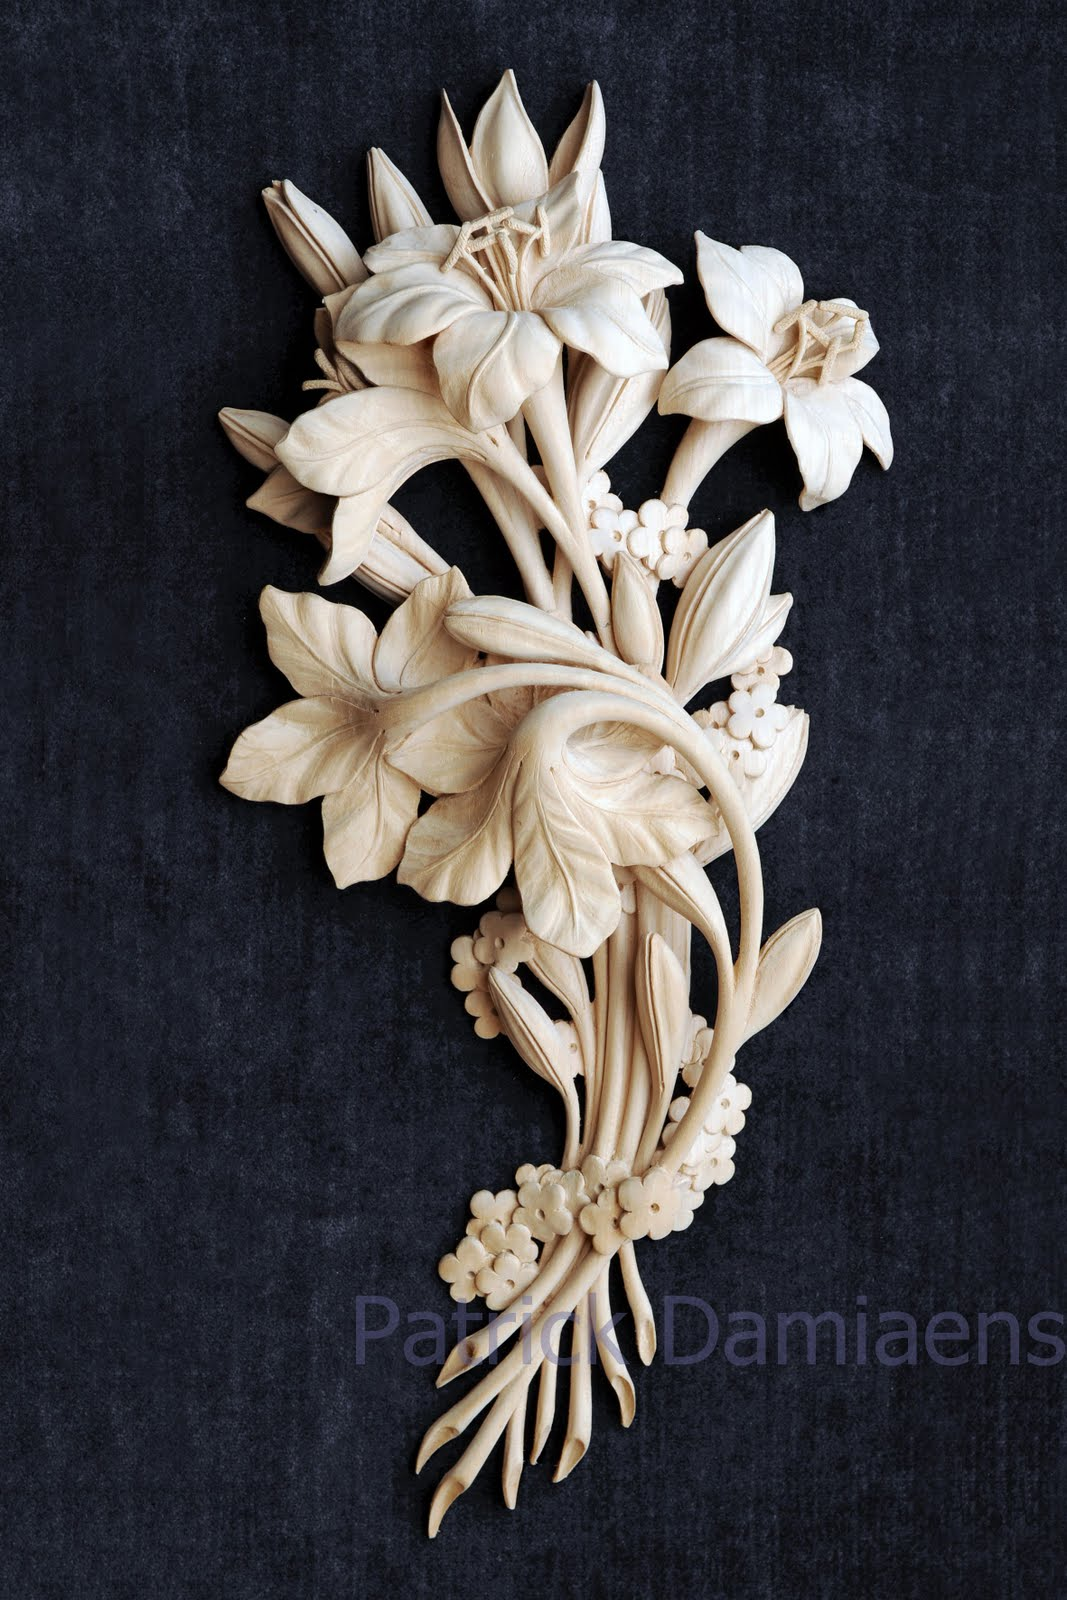 Patrick damiaens ornamental woodcarving grinling